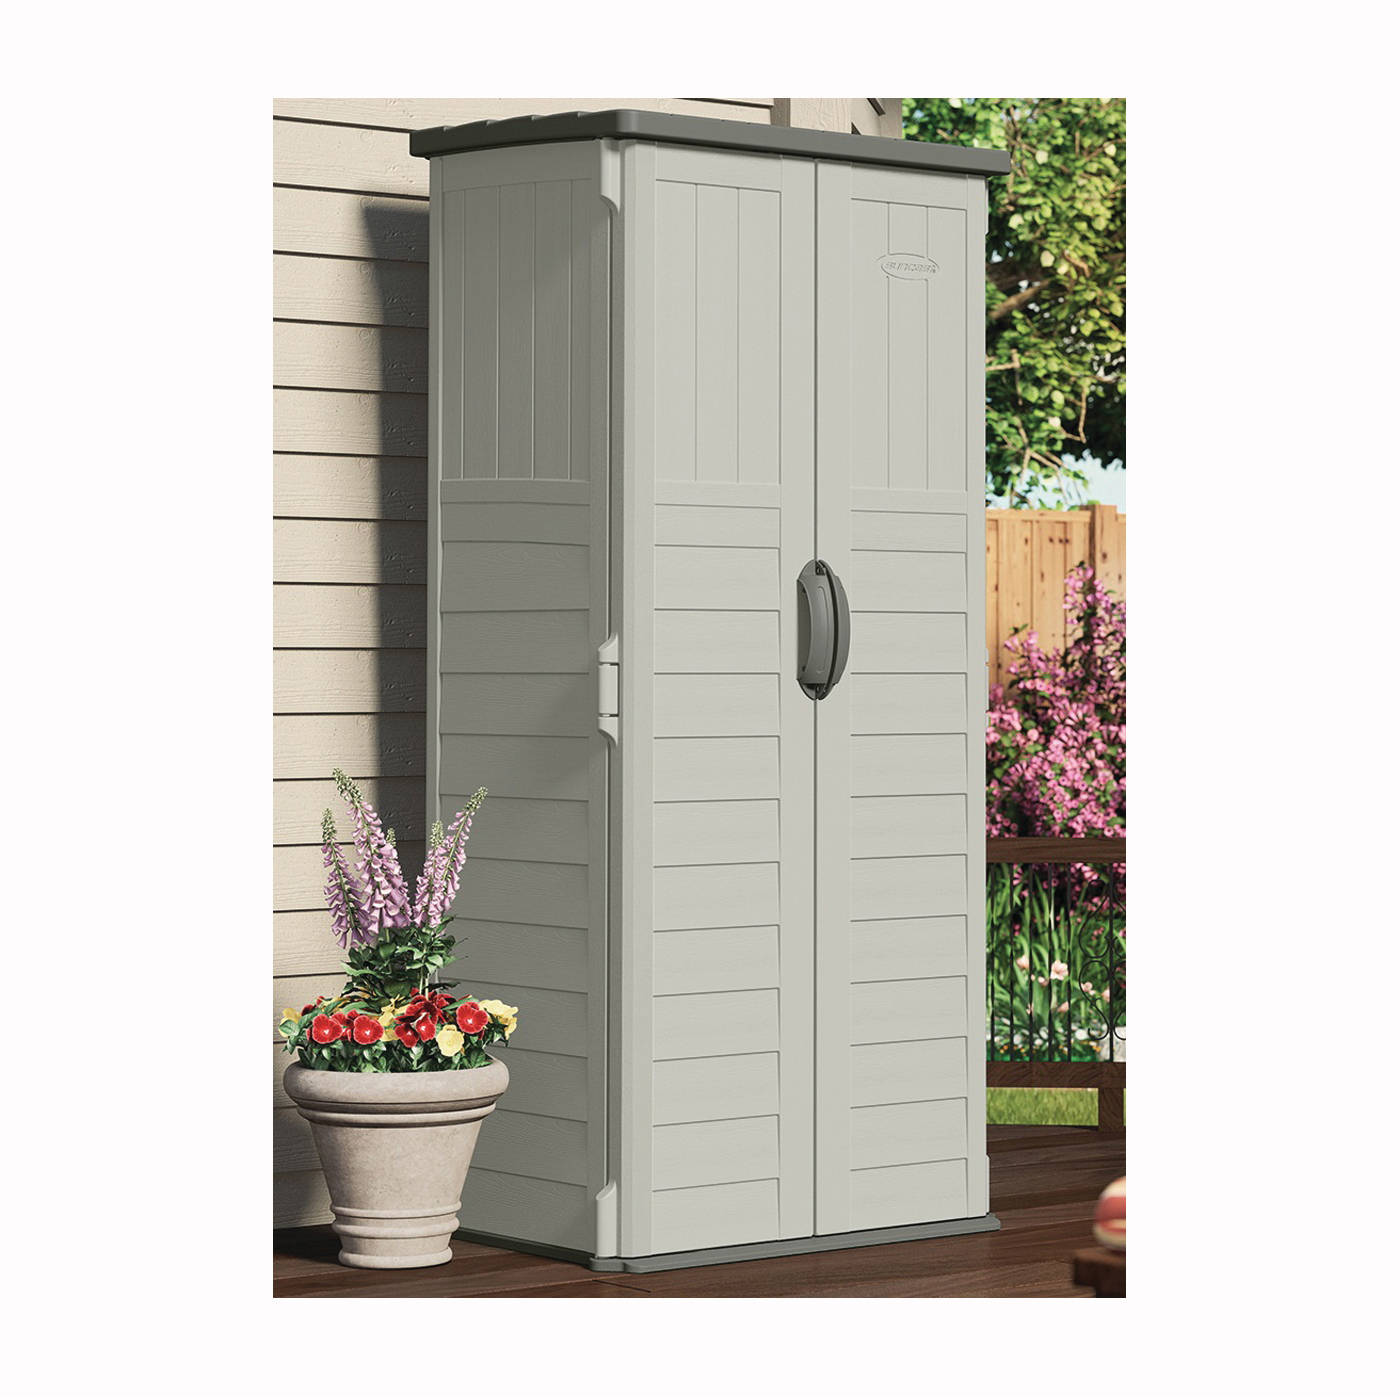 Picture of Suncast BMS1250 Storage Shed, 22 cu-ft Capacity, 2 ft 8-1/4 in W, 2 ft 1-1/2 in D, 6 ft H, Resin, Stoney/Vanilla